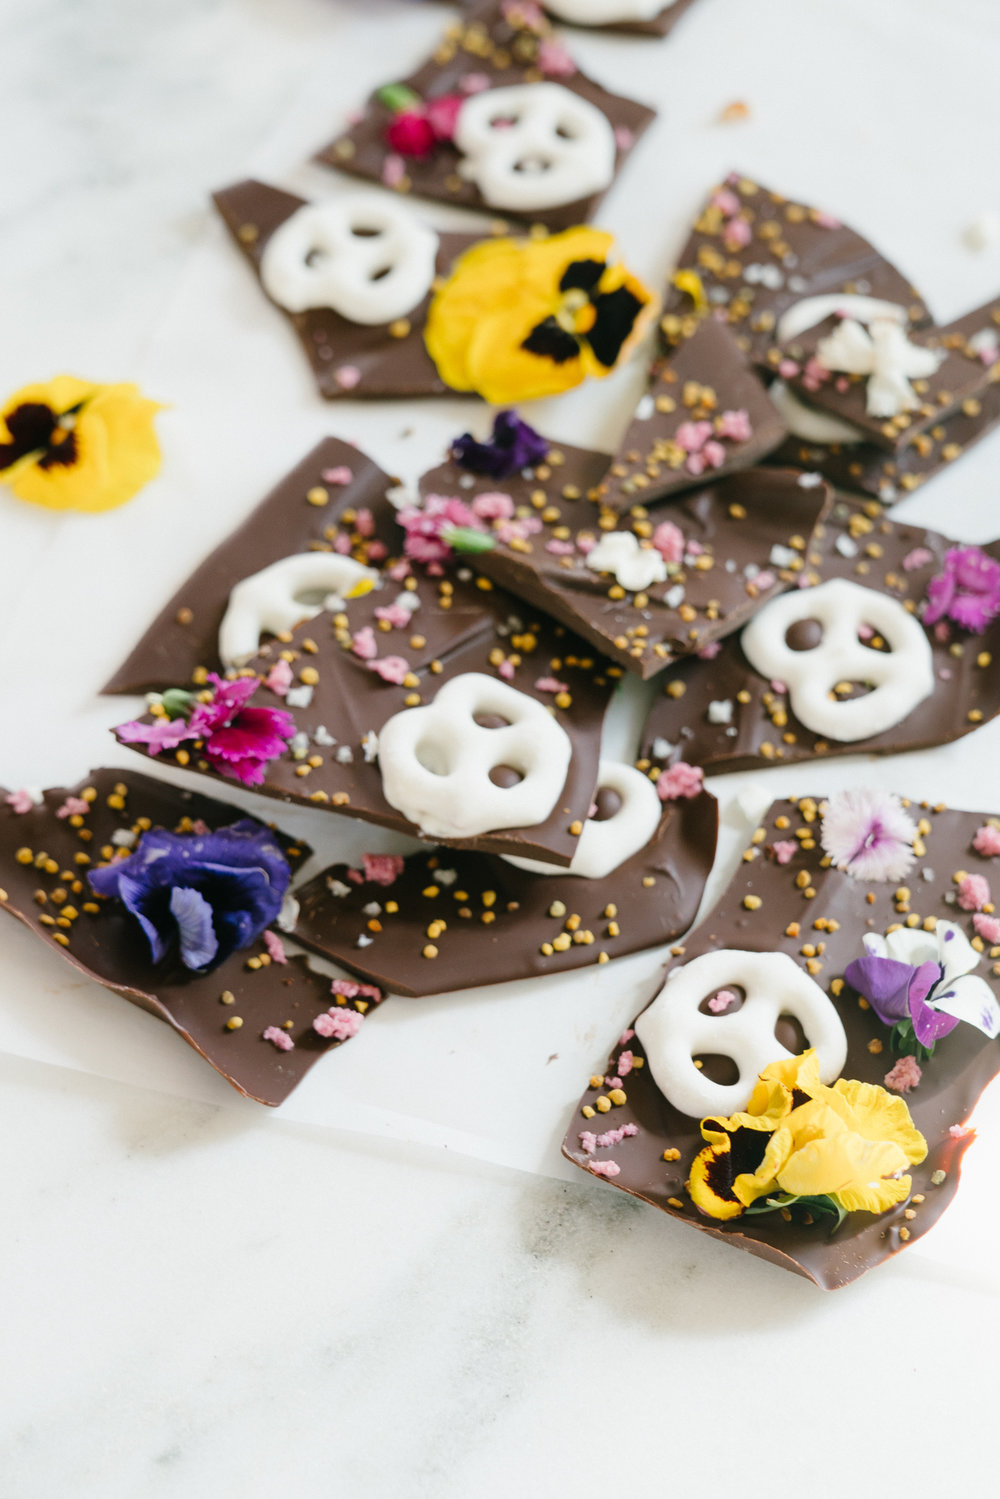 Adaptogen Spring Chocolate Bark